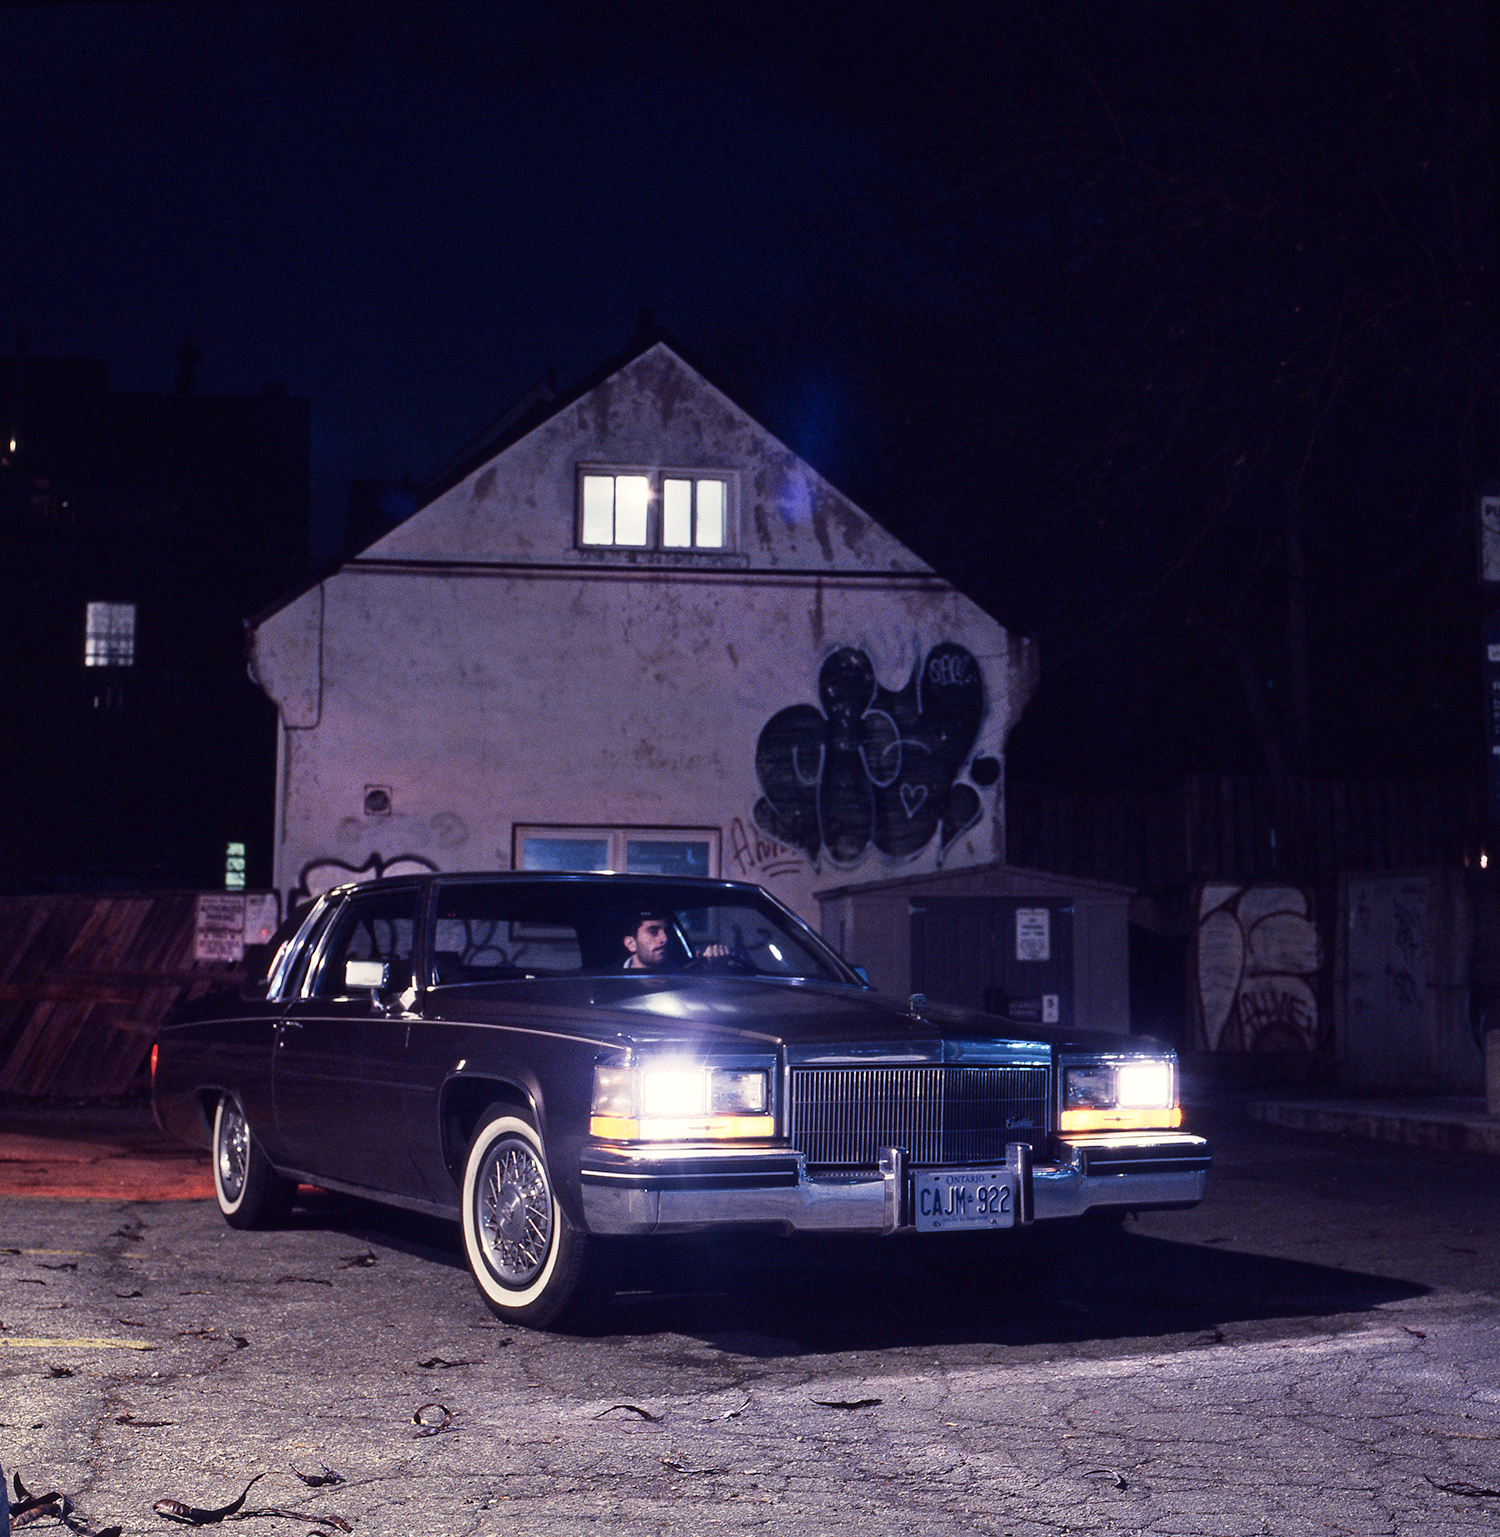 51-Kodak-Colorplus-200_Toronto_Night-Portrait_Steve-Hosier-with-Cadillac_Environmental-Portrait_Nightscape_alt-select.jpg